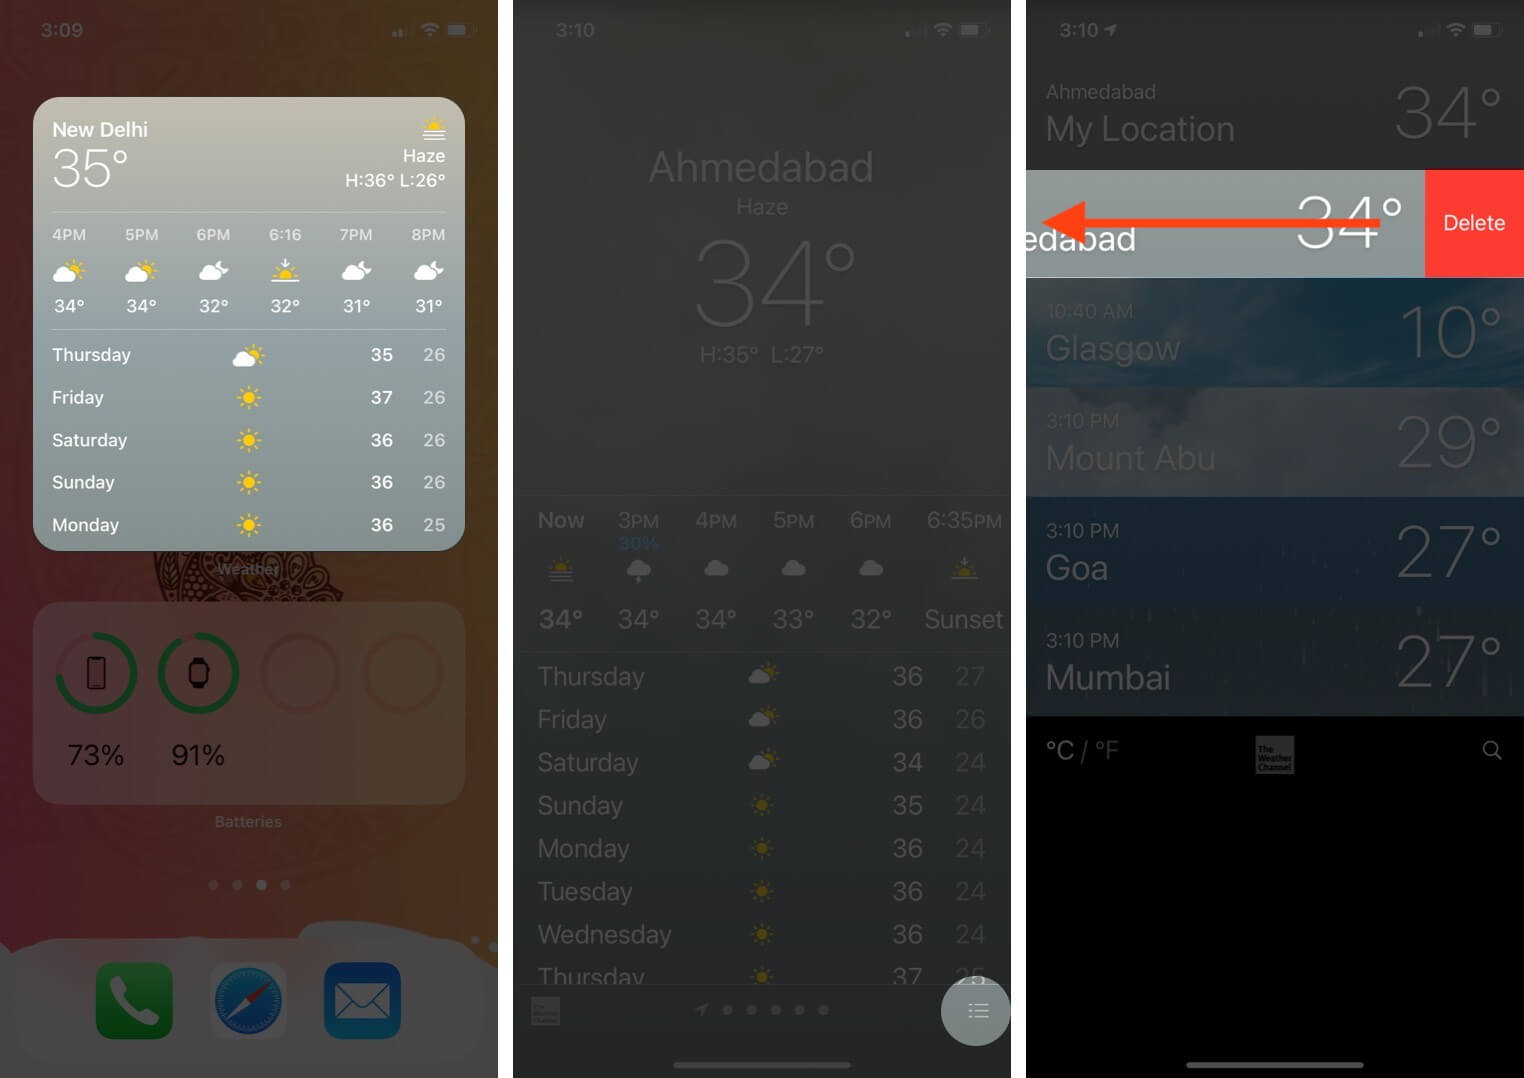 open weather app tap on stack icon then swipe location and tap on delete to remove saved location on iphone